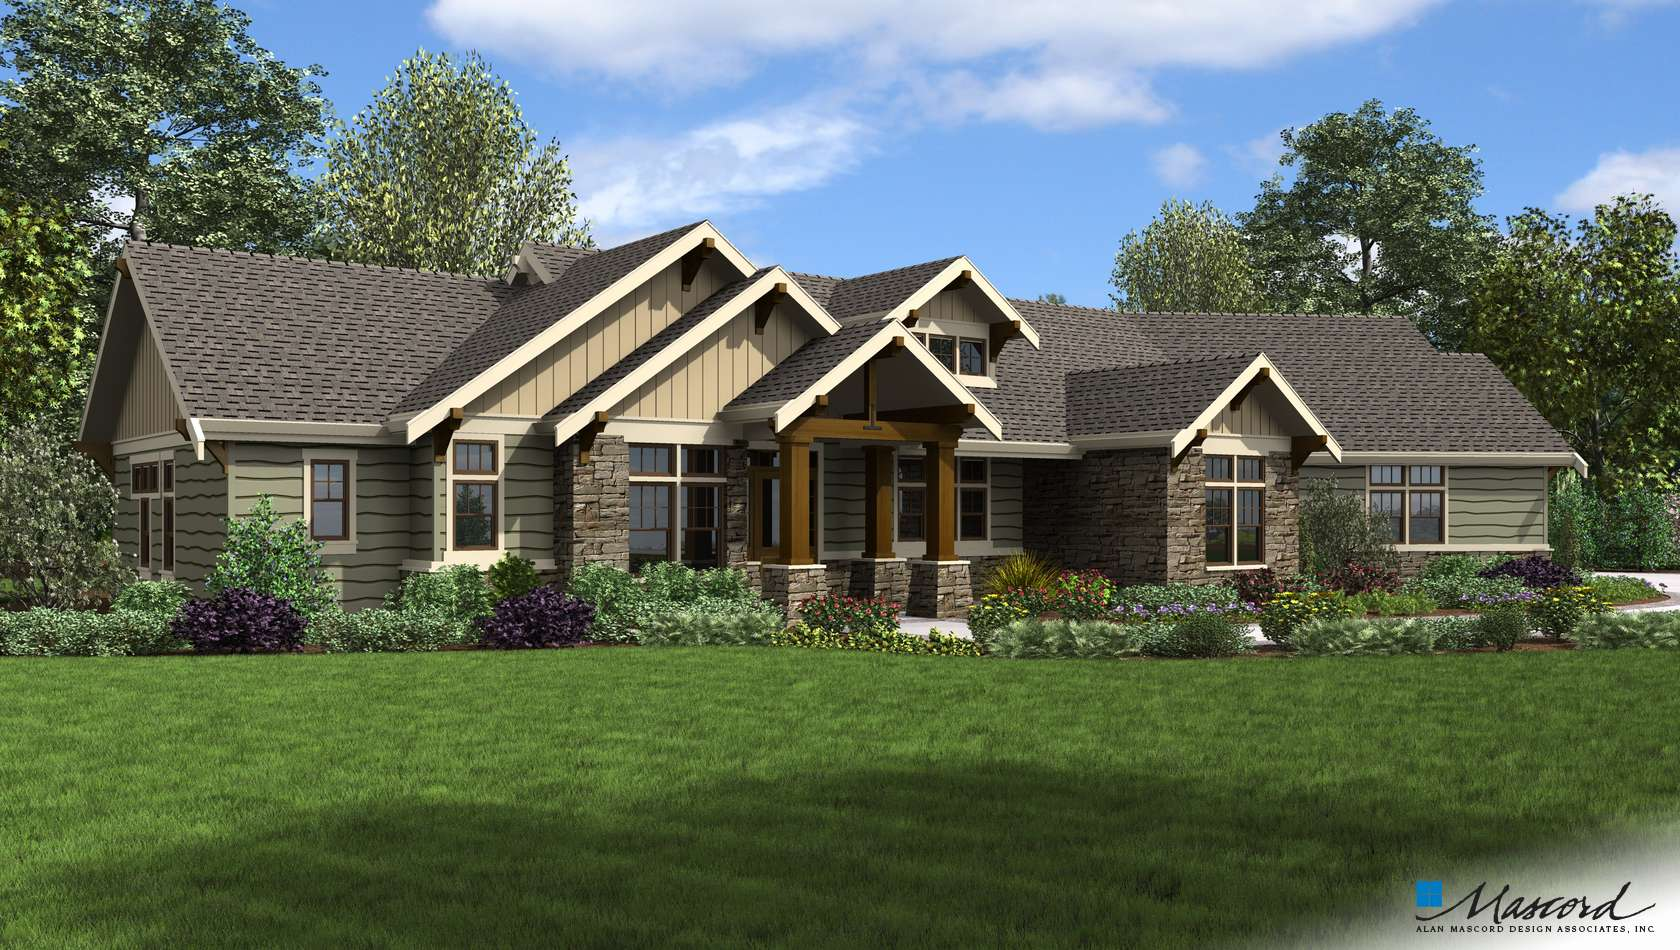 Main image for house plan B1250B: The